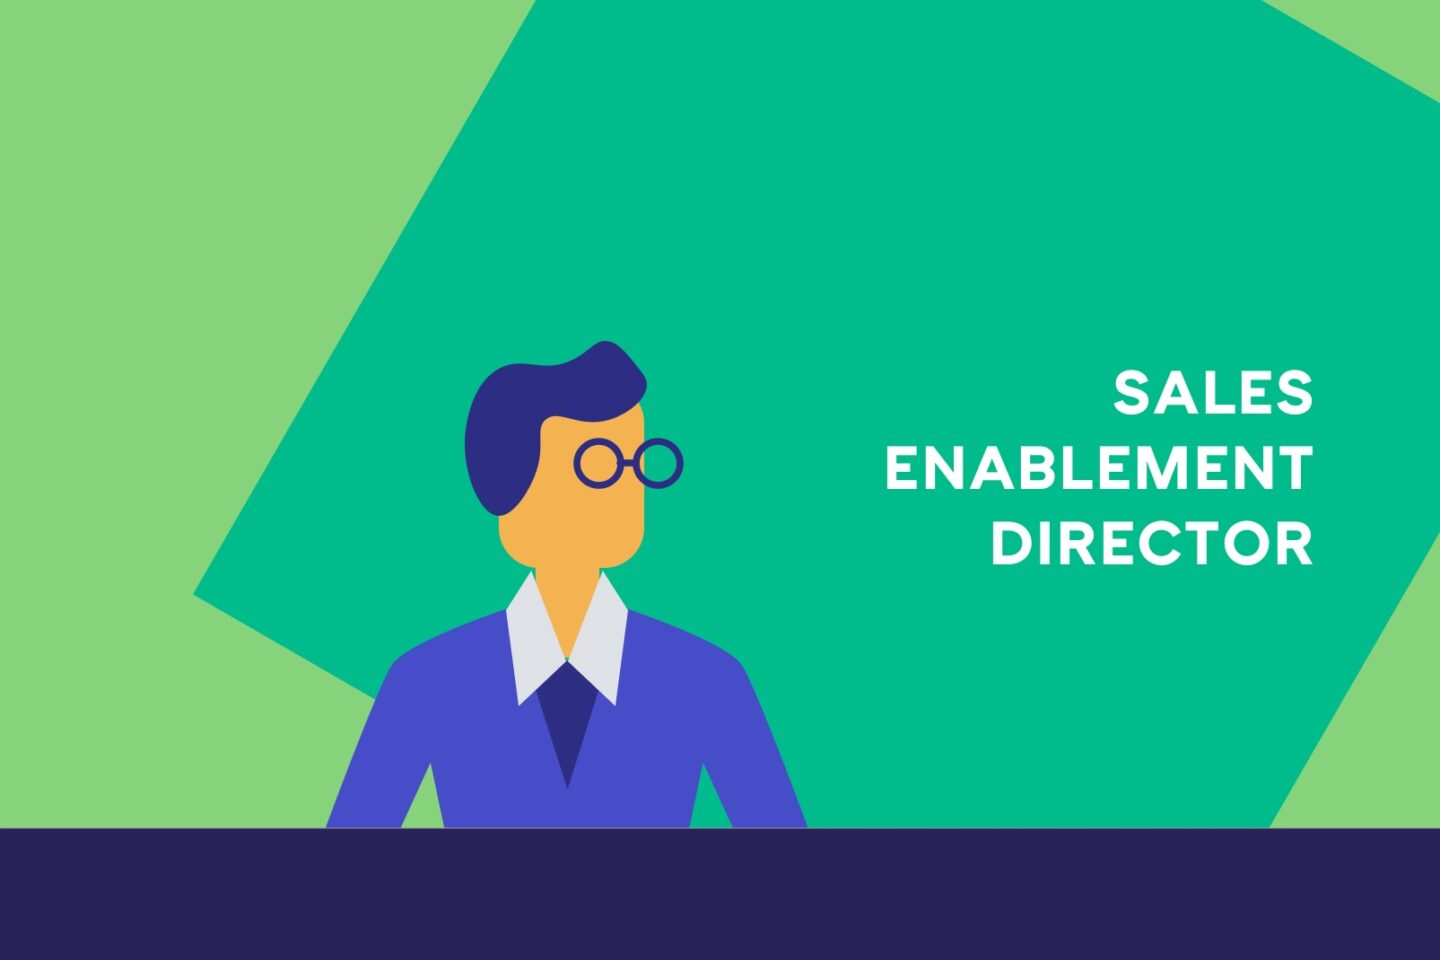 Sales enablement ROI for the sales enablement director